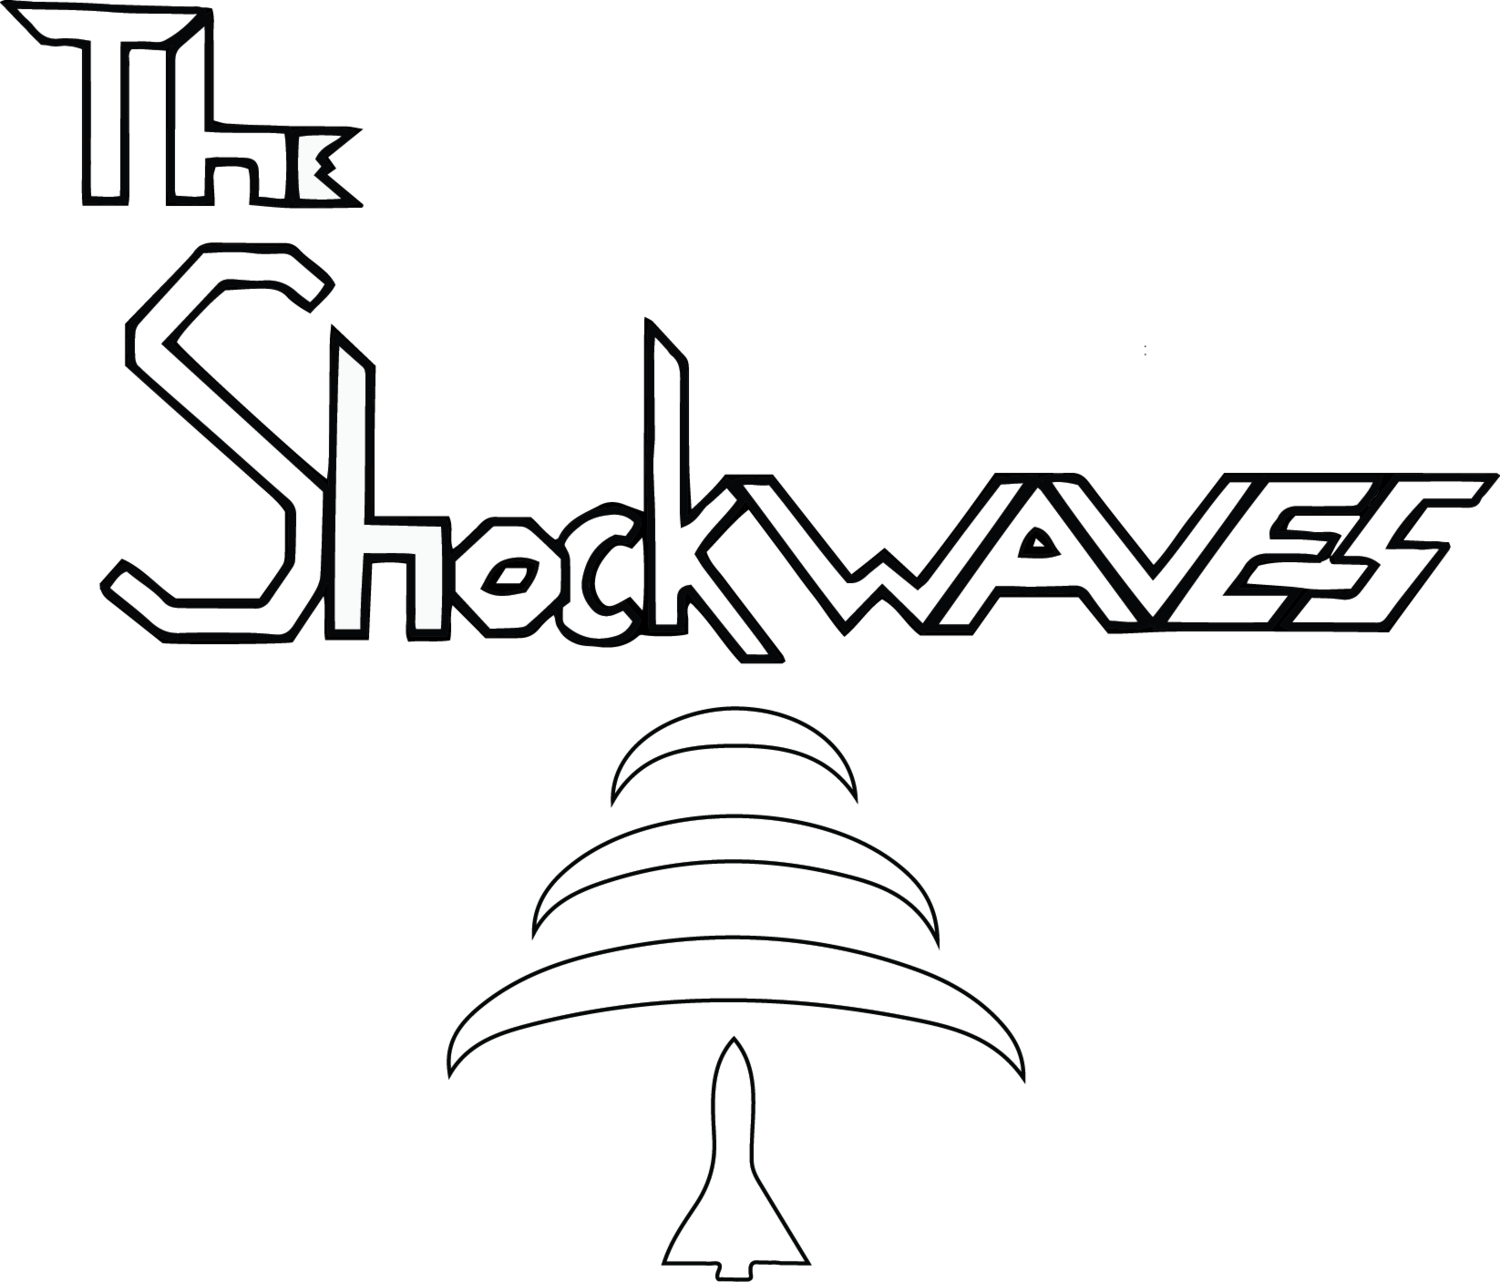 clipart free library The Shockwaves